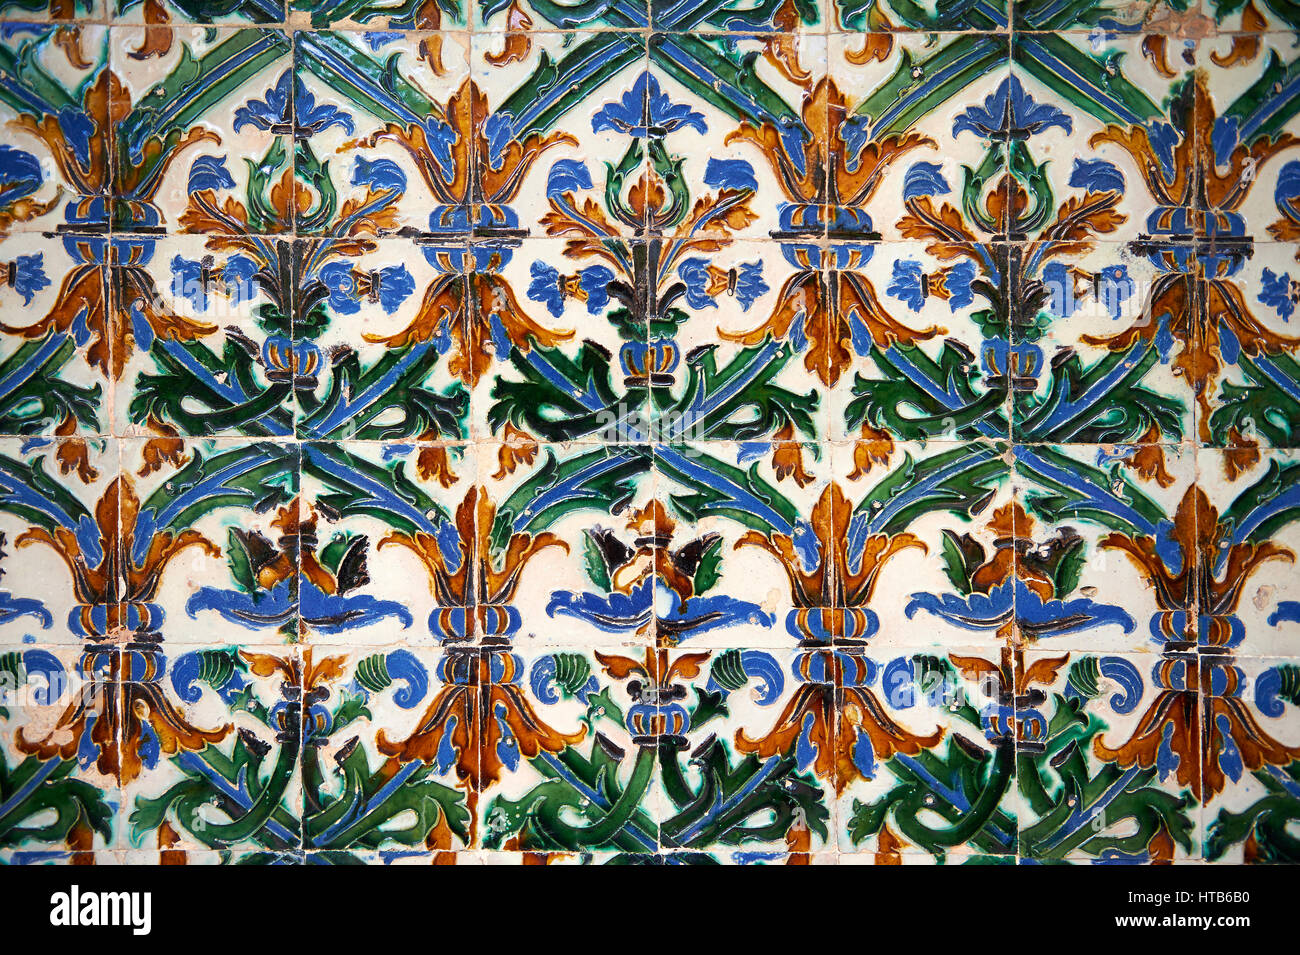 16th century Spanish Mudjar tiles from the Pavillion of Carlos V, Selivve Alcazar, Seville, Spain - Stock Image